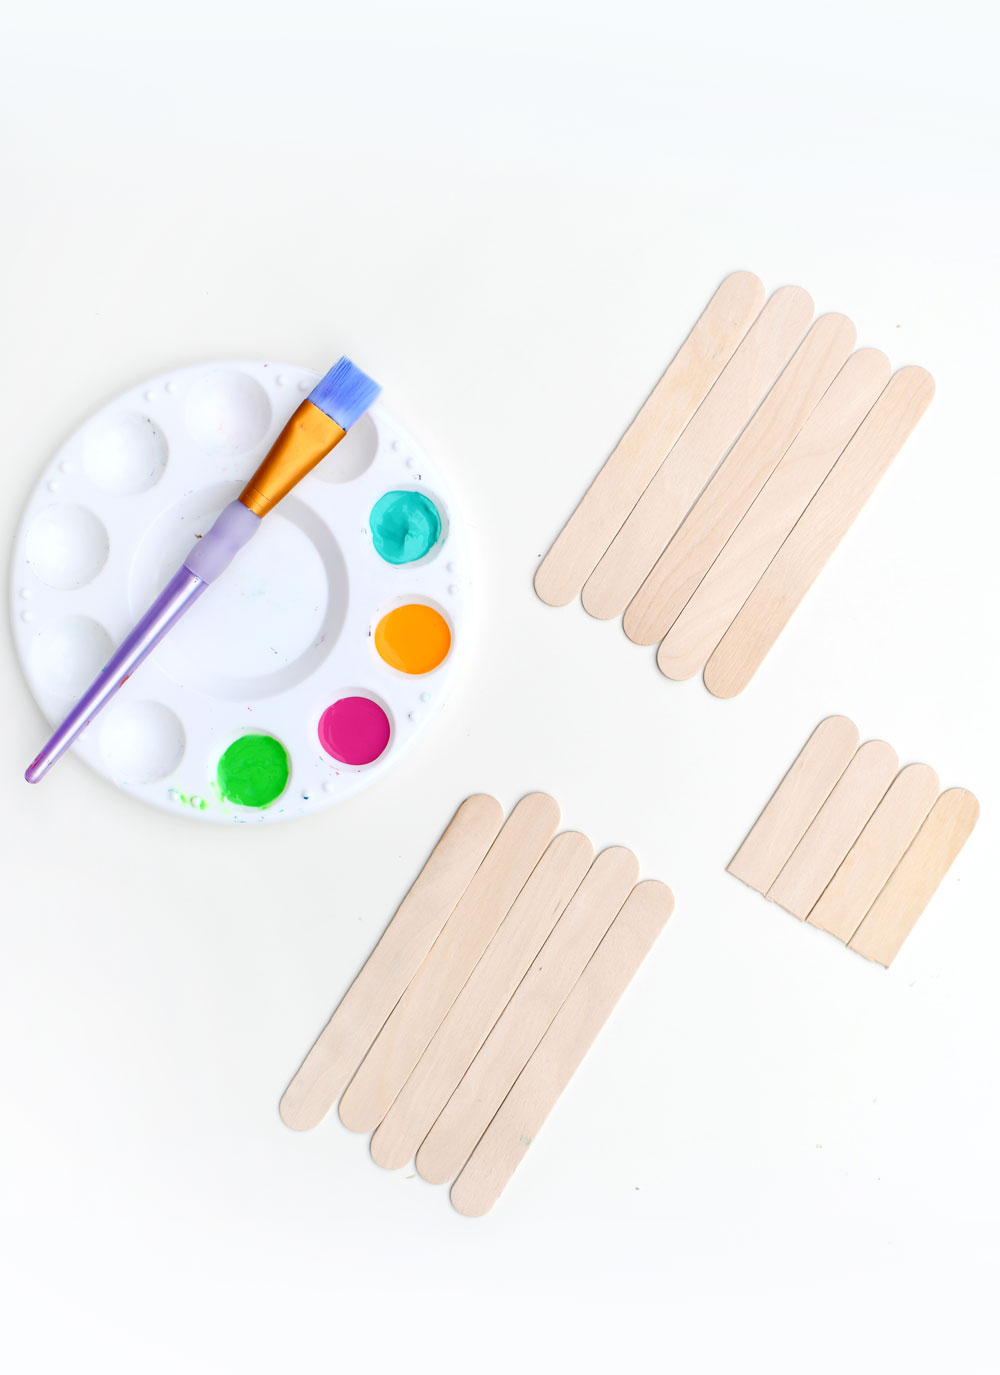 How to make popsicle stick monsters